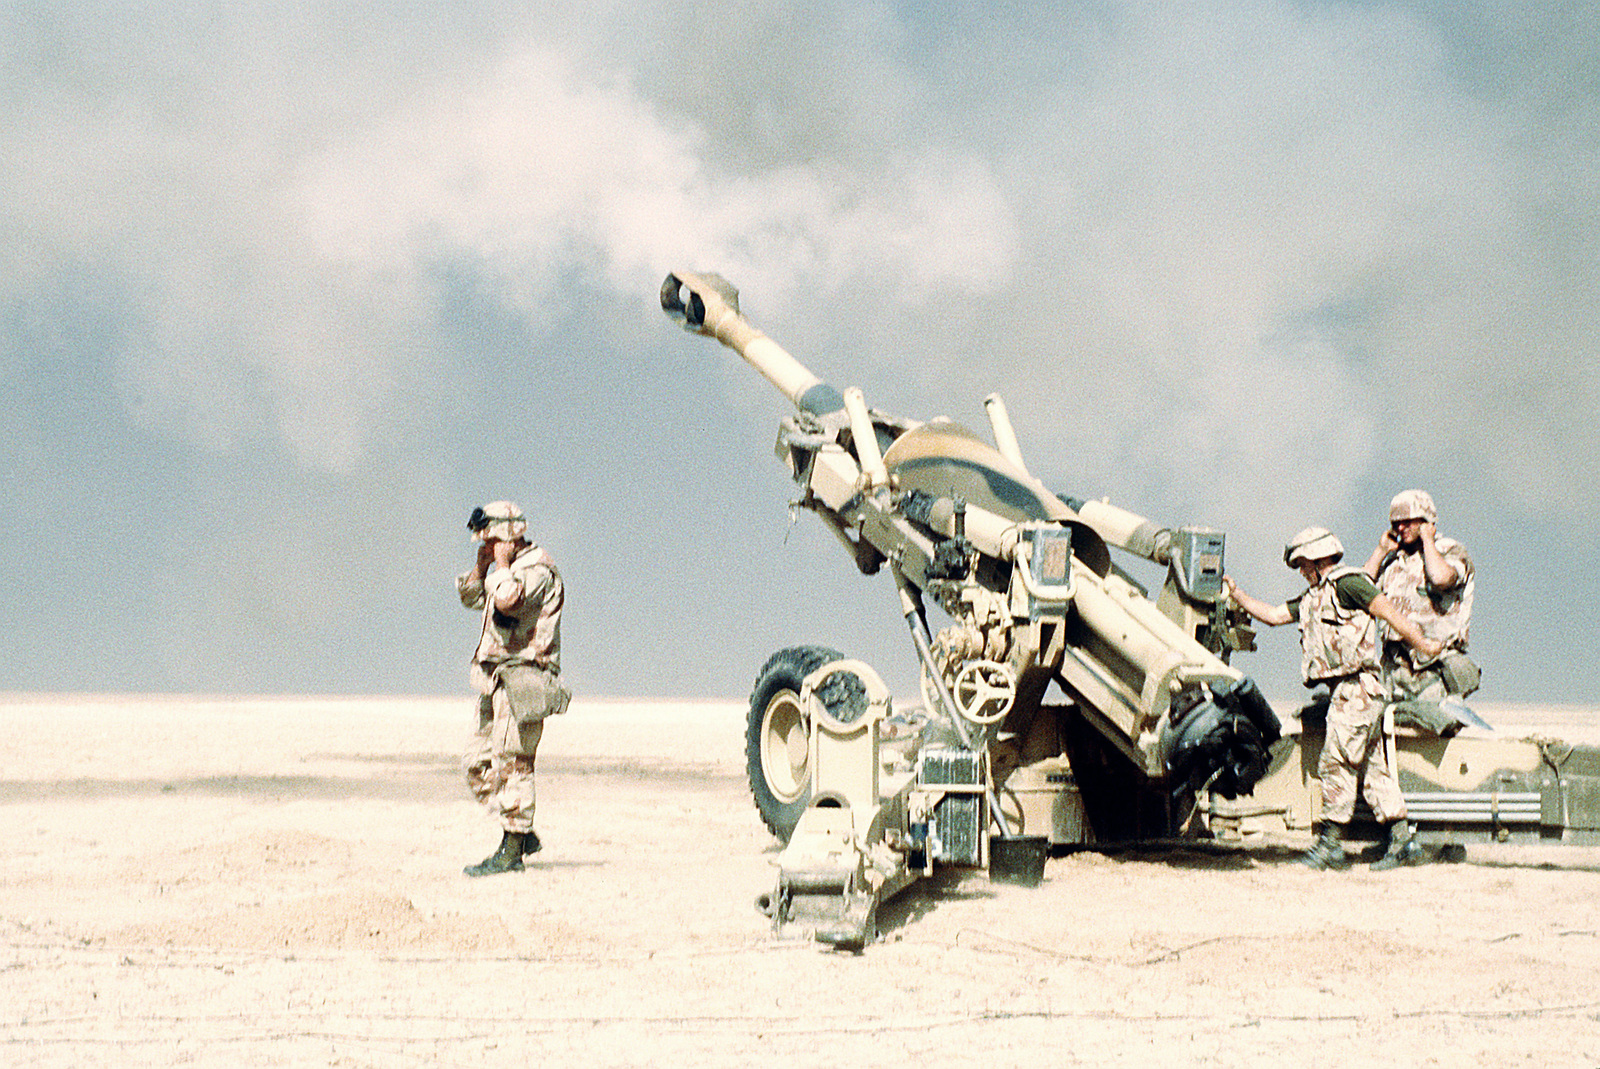 Marine artillerymen from the 2nd Marine Expeditionary Force fire their M-198 155mm howitzer in support of the opening of the ground offensive to free Kuwait during Operation Desert Storm.